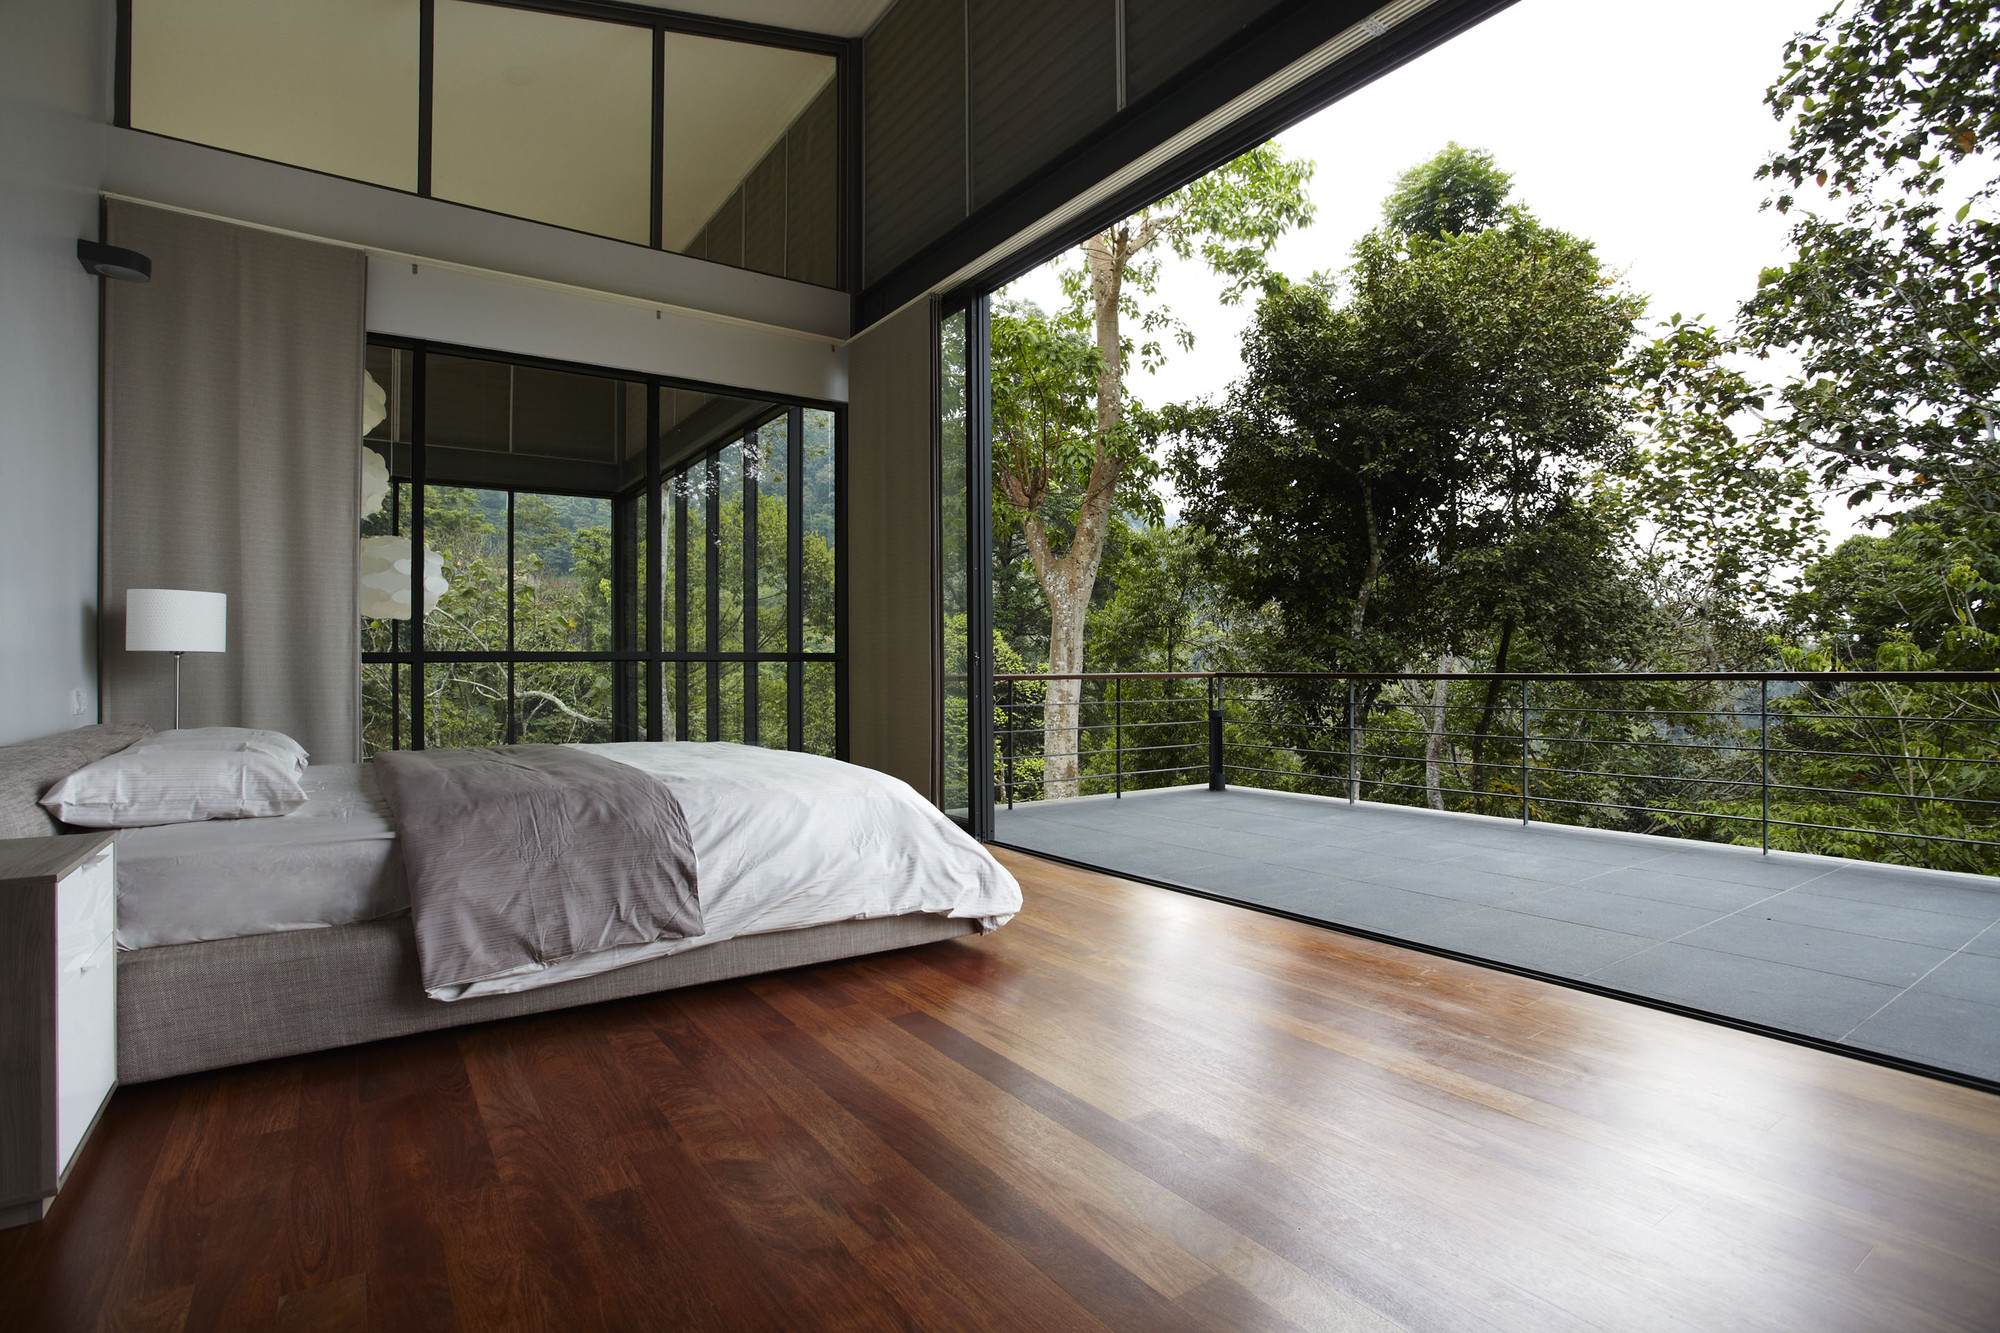 Gallery Of The Deck House Choo Gim Wah Architect 5